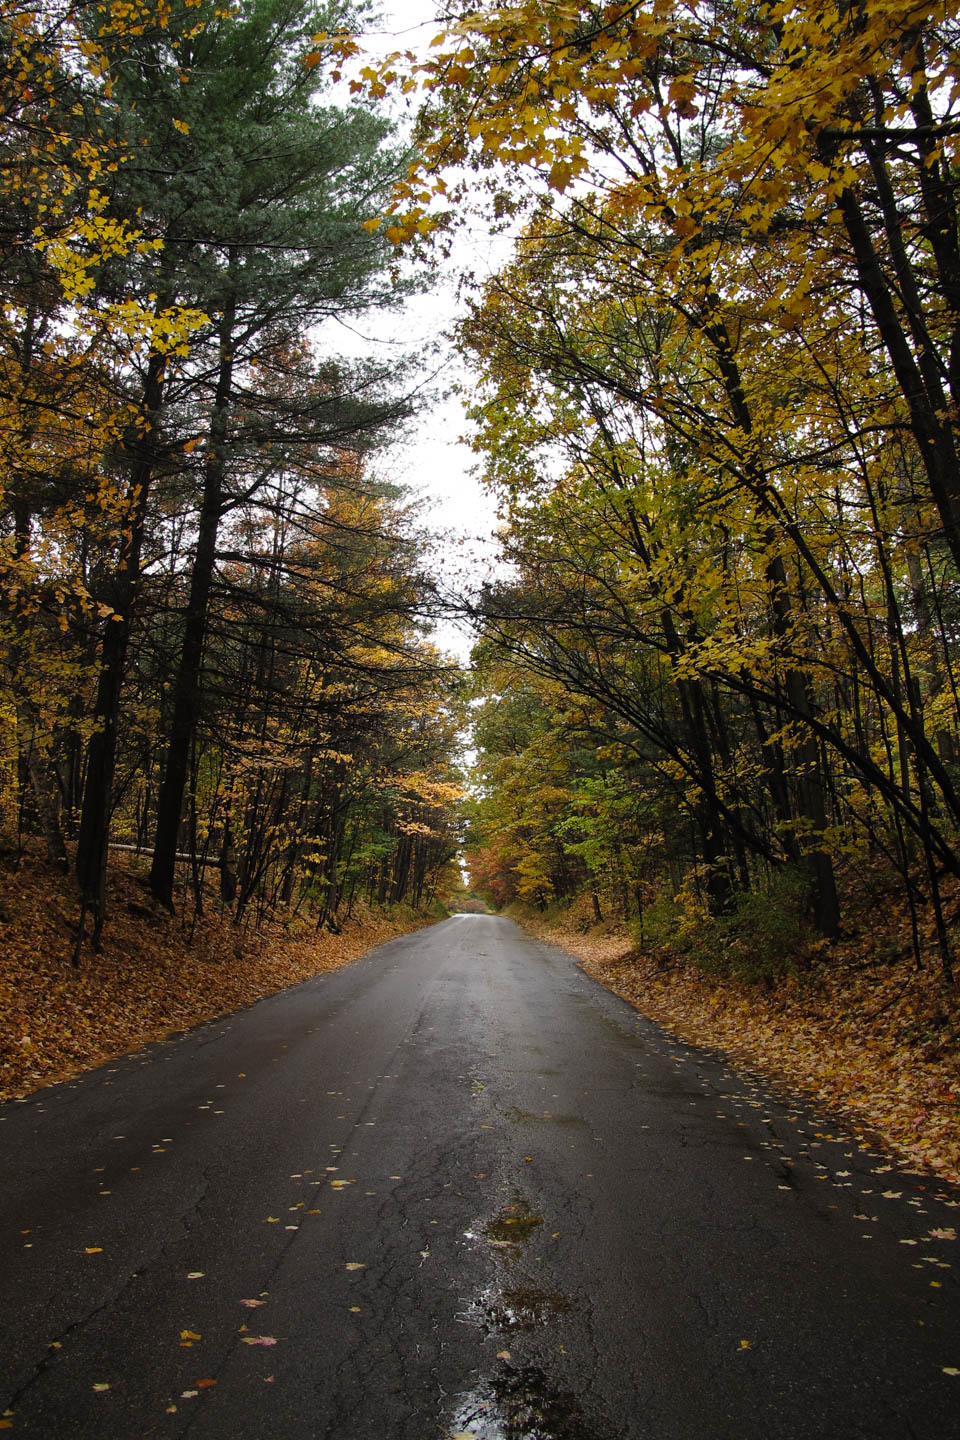 Autumn trees guard the roads of Vermont